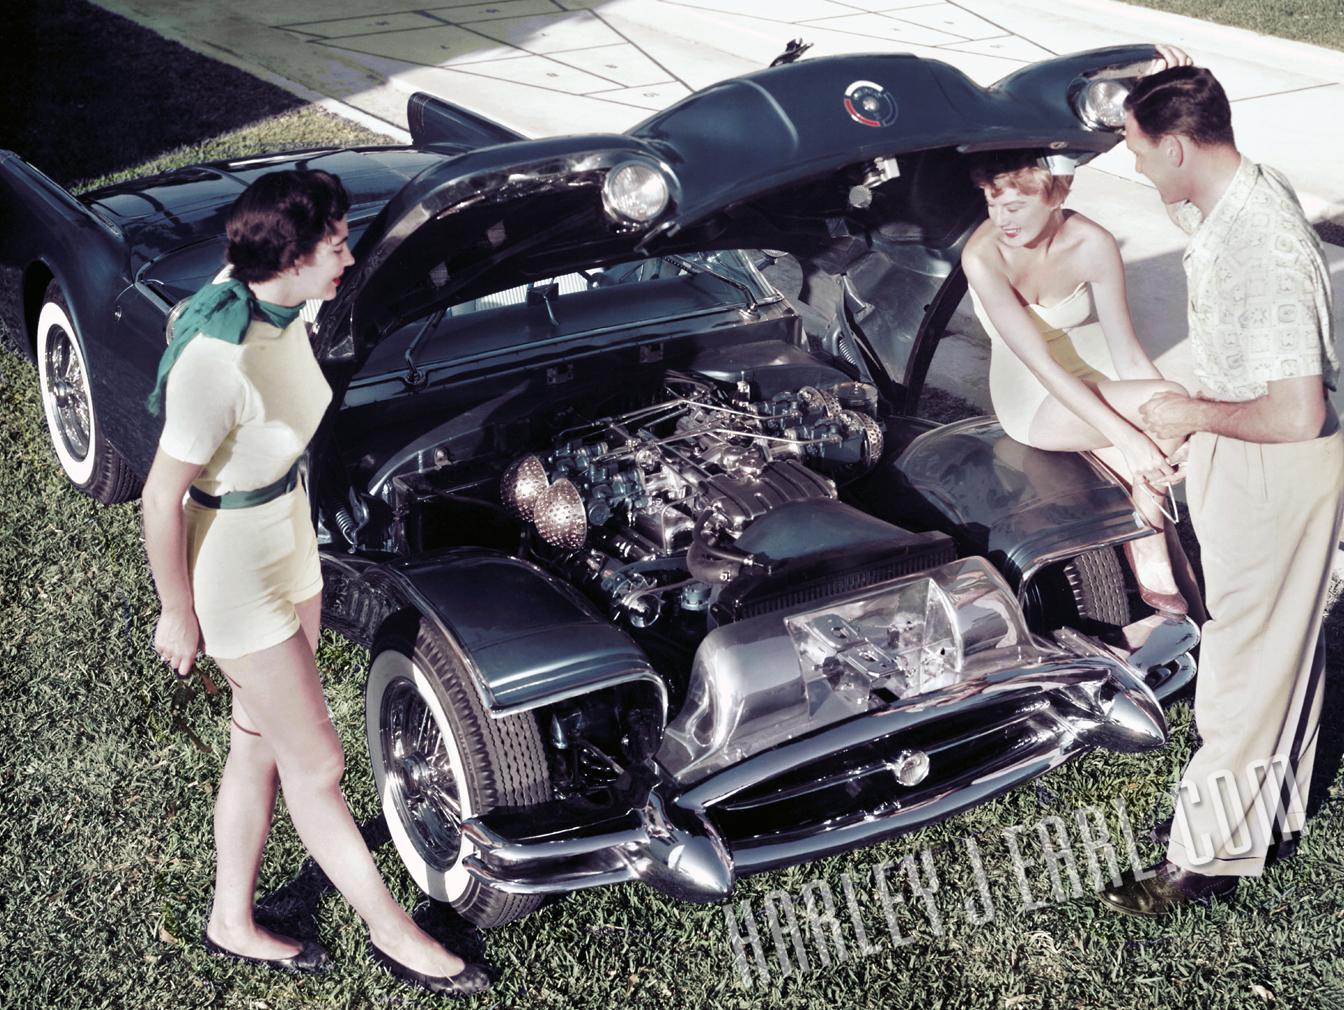 """The 1954 Buick Wildcat II dream car by HJE helped launch the """"muscle car"""" theme and/or offering inside Detroit's modern auto world. Most of Earl's custom Motorama show cars boasted V-8s, and the auto writer Art Lauring's comment nails it,  """"the Wildcat II is propelled by a 220-h.p. engine that boasts four carburetors with flame arresters.""""  in the L .A. Times  from March '54."""